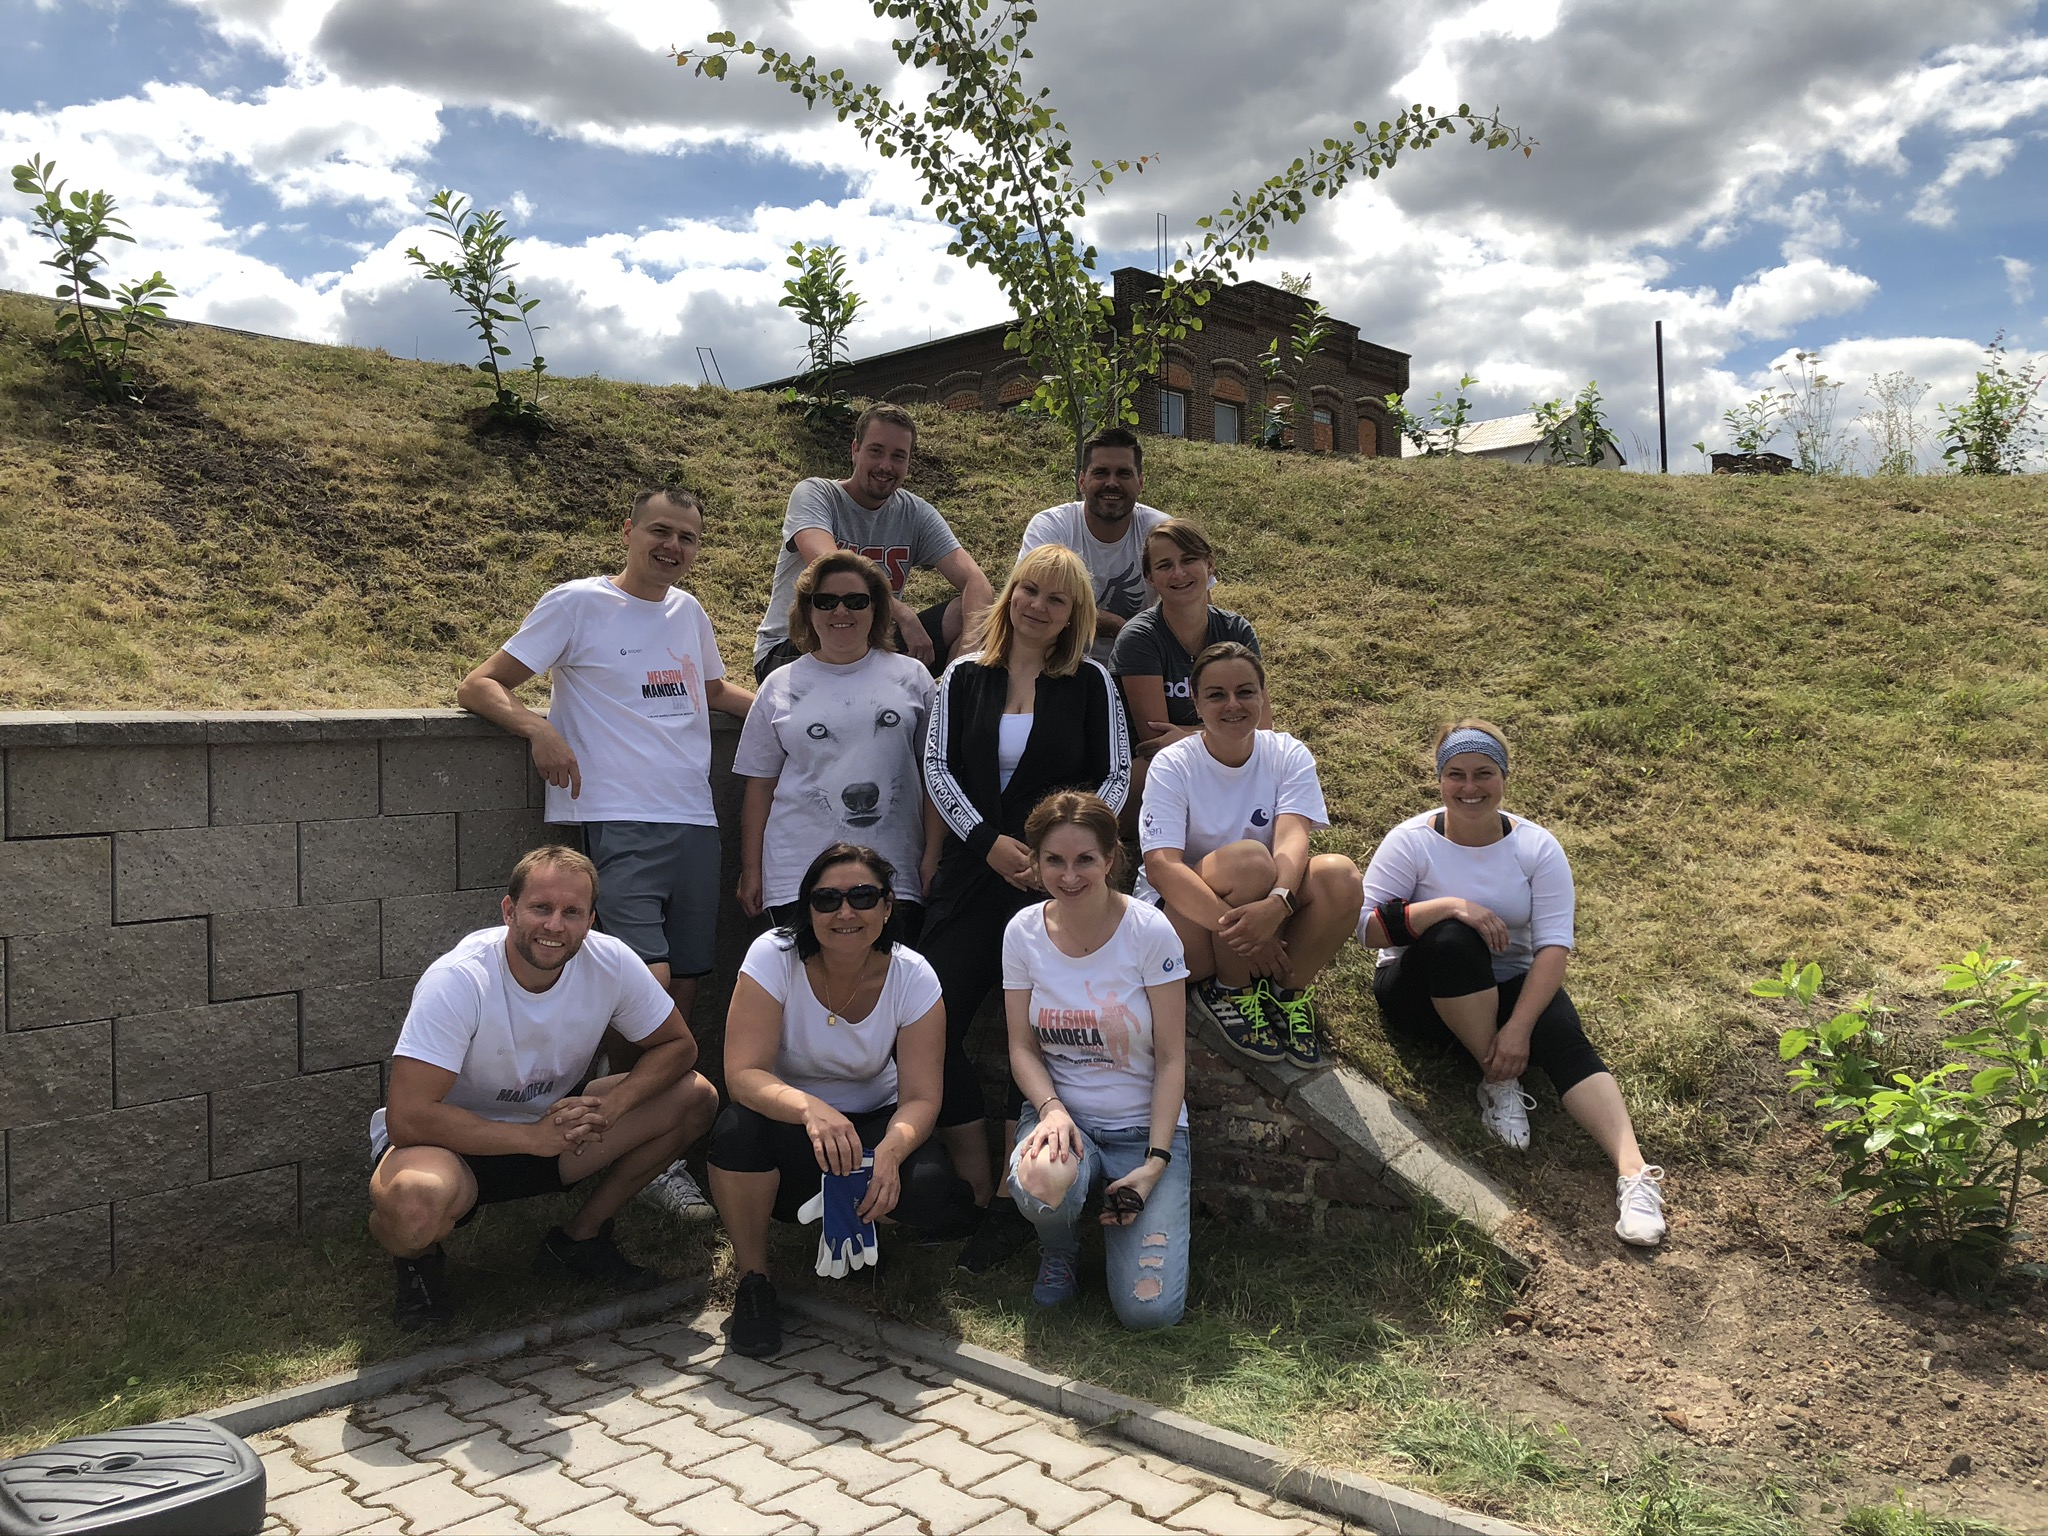 Aspen's team planted 60 trees at SeneCura Home